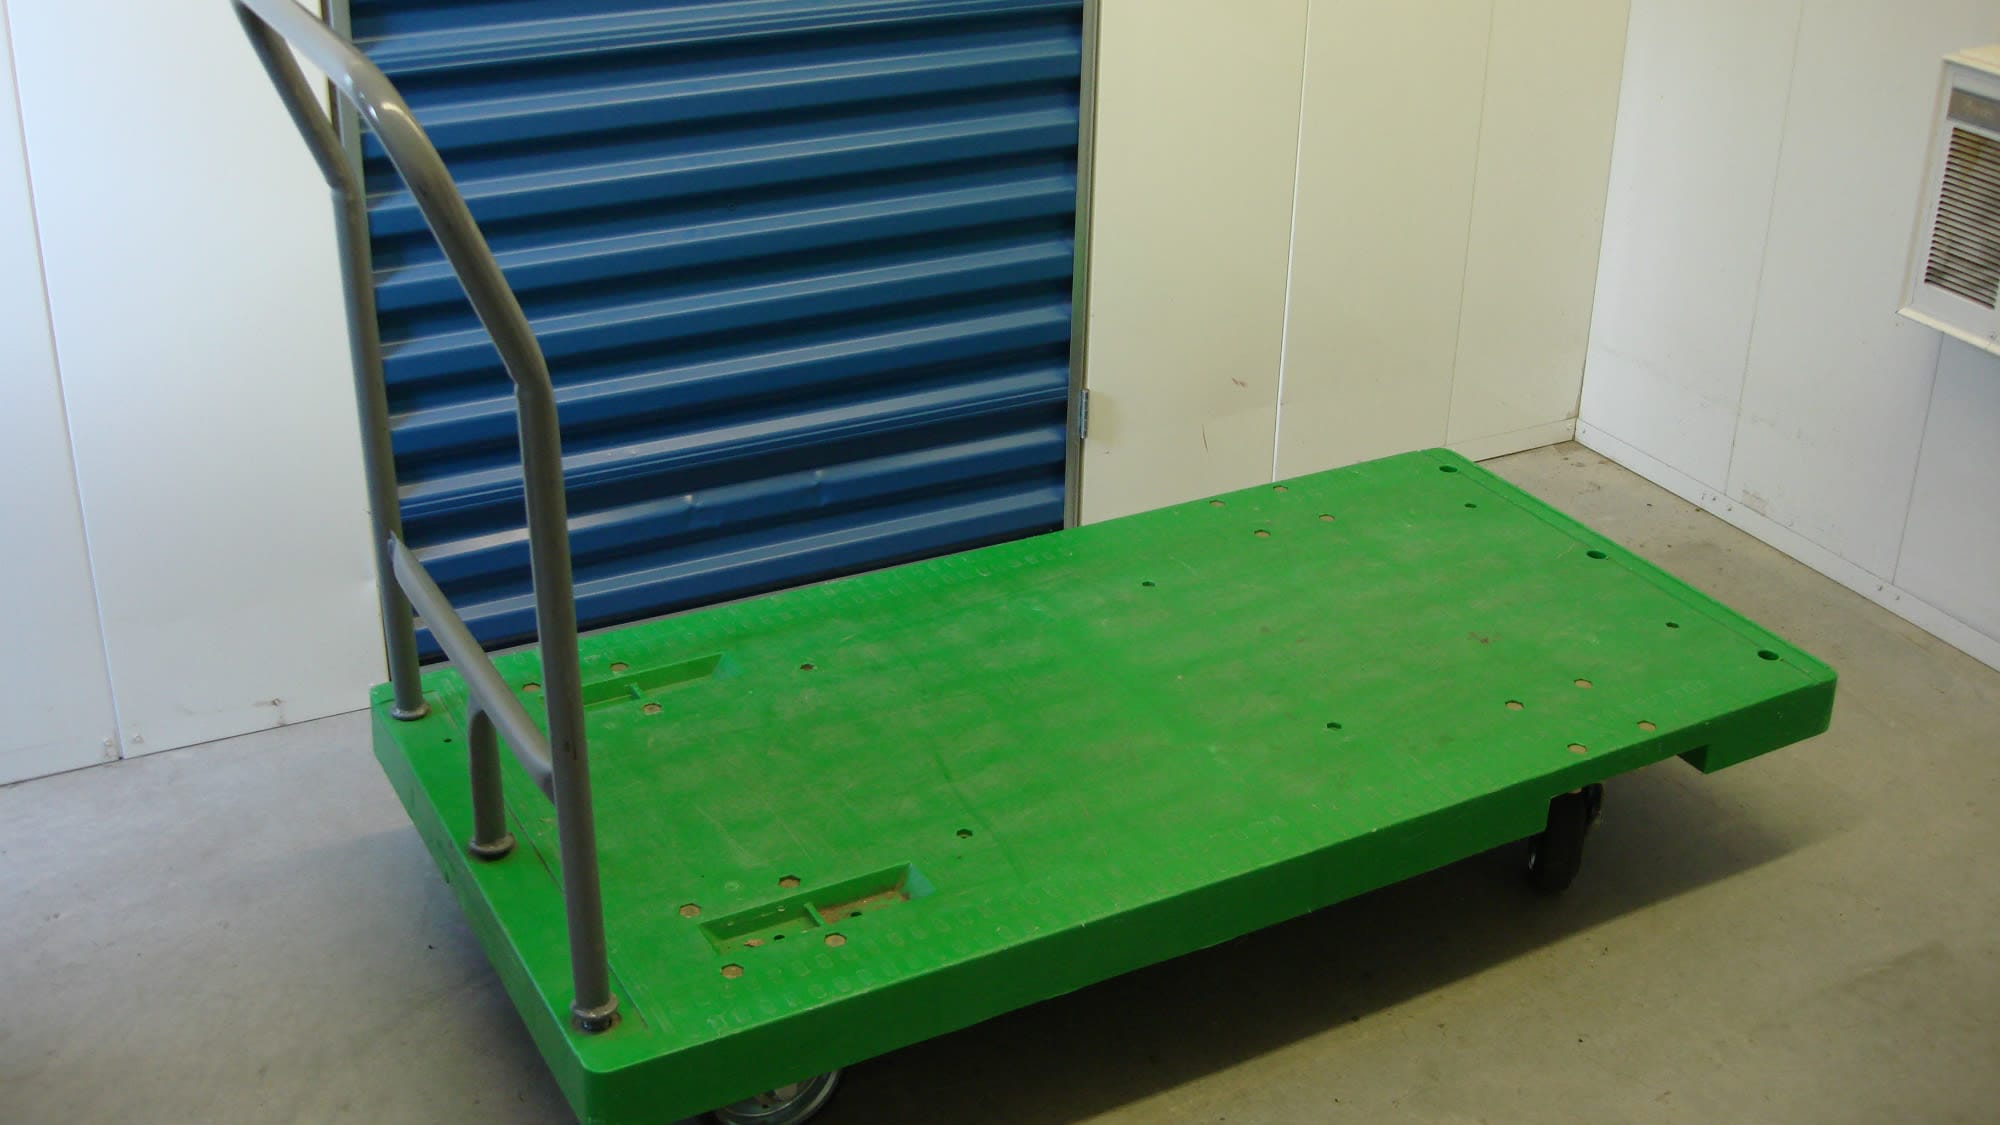 Carts available at Self Storage Plus in Sterling, VA